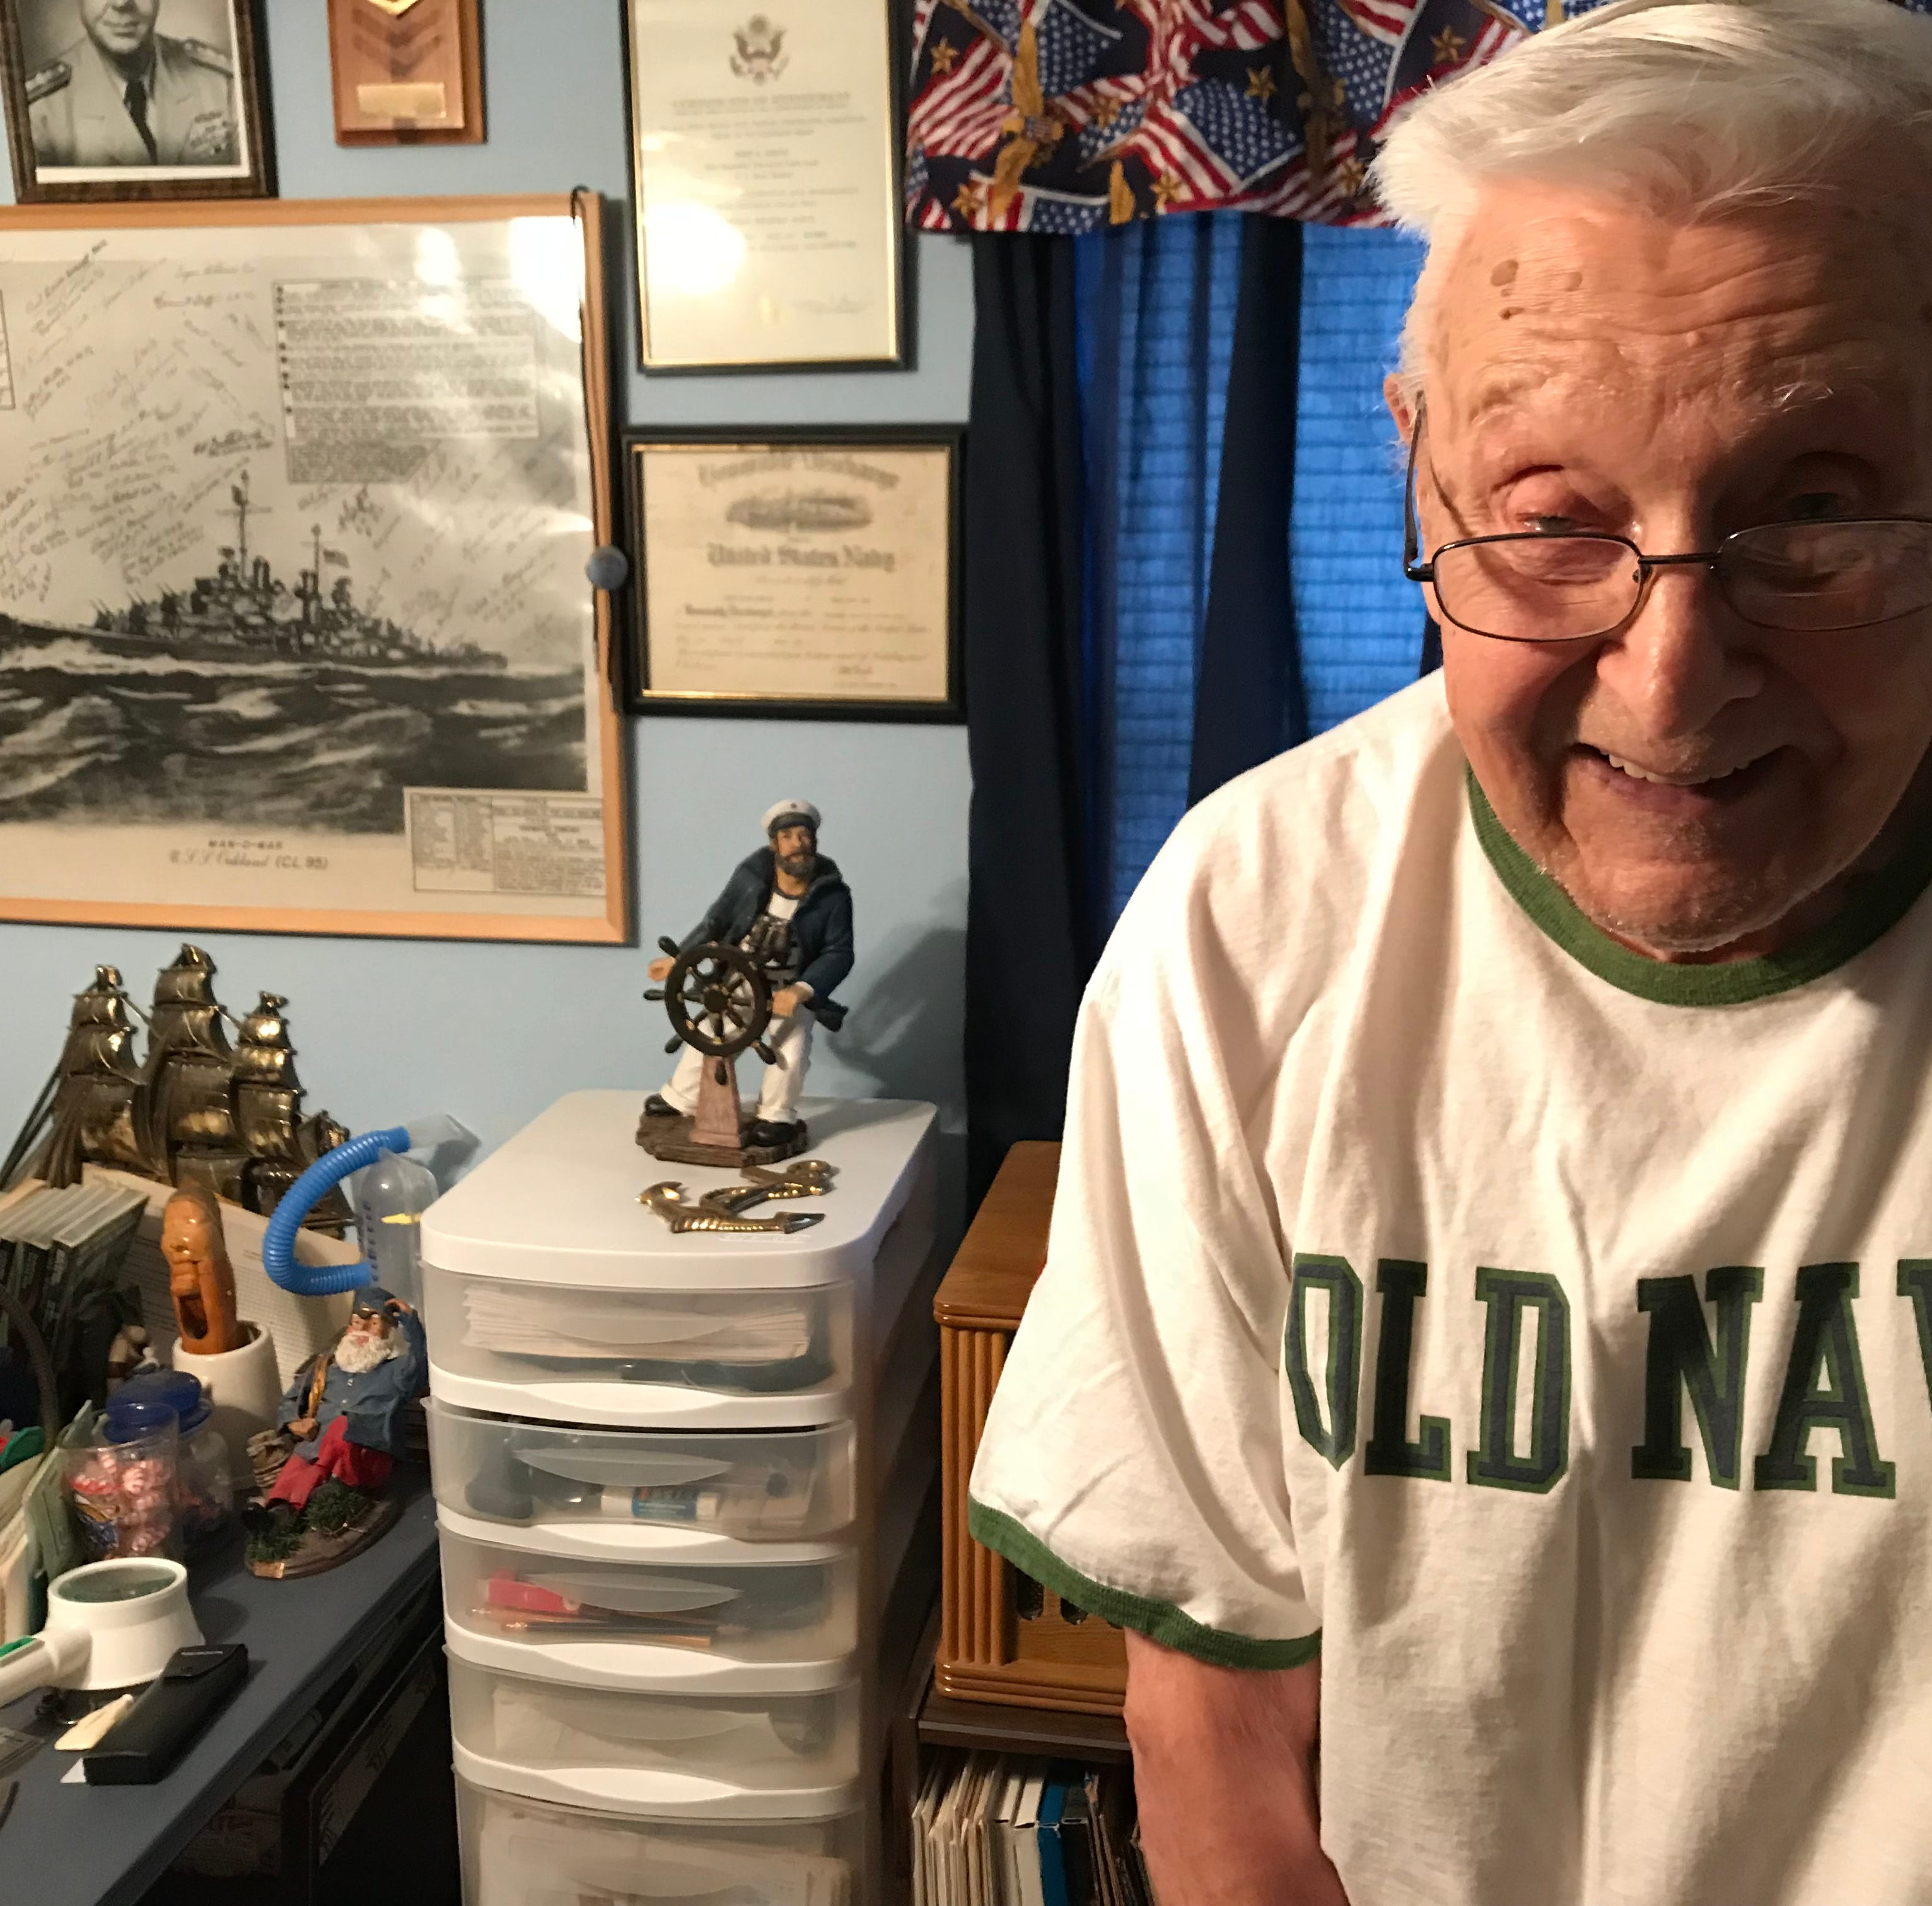 WWII sailor, 95, from Wisconsin Rapids yearns to see his old ship's mast one more time